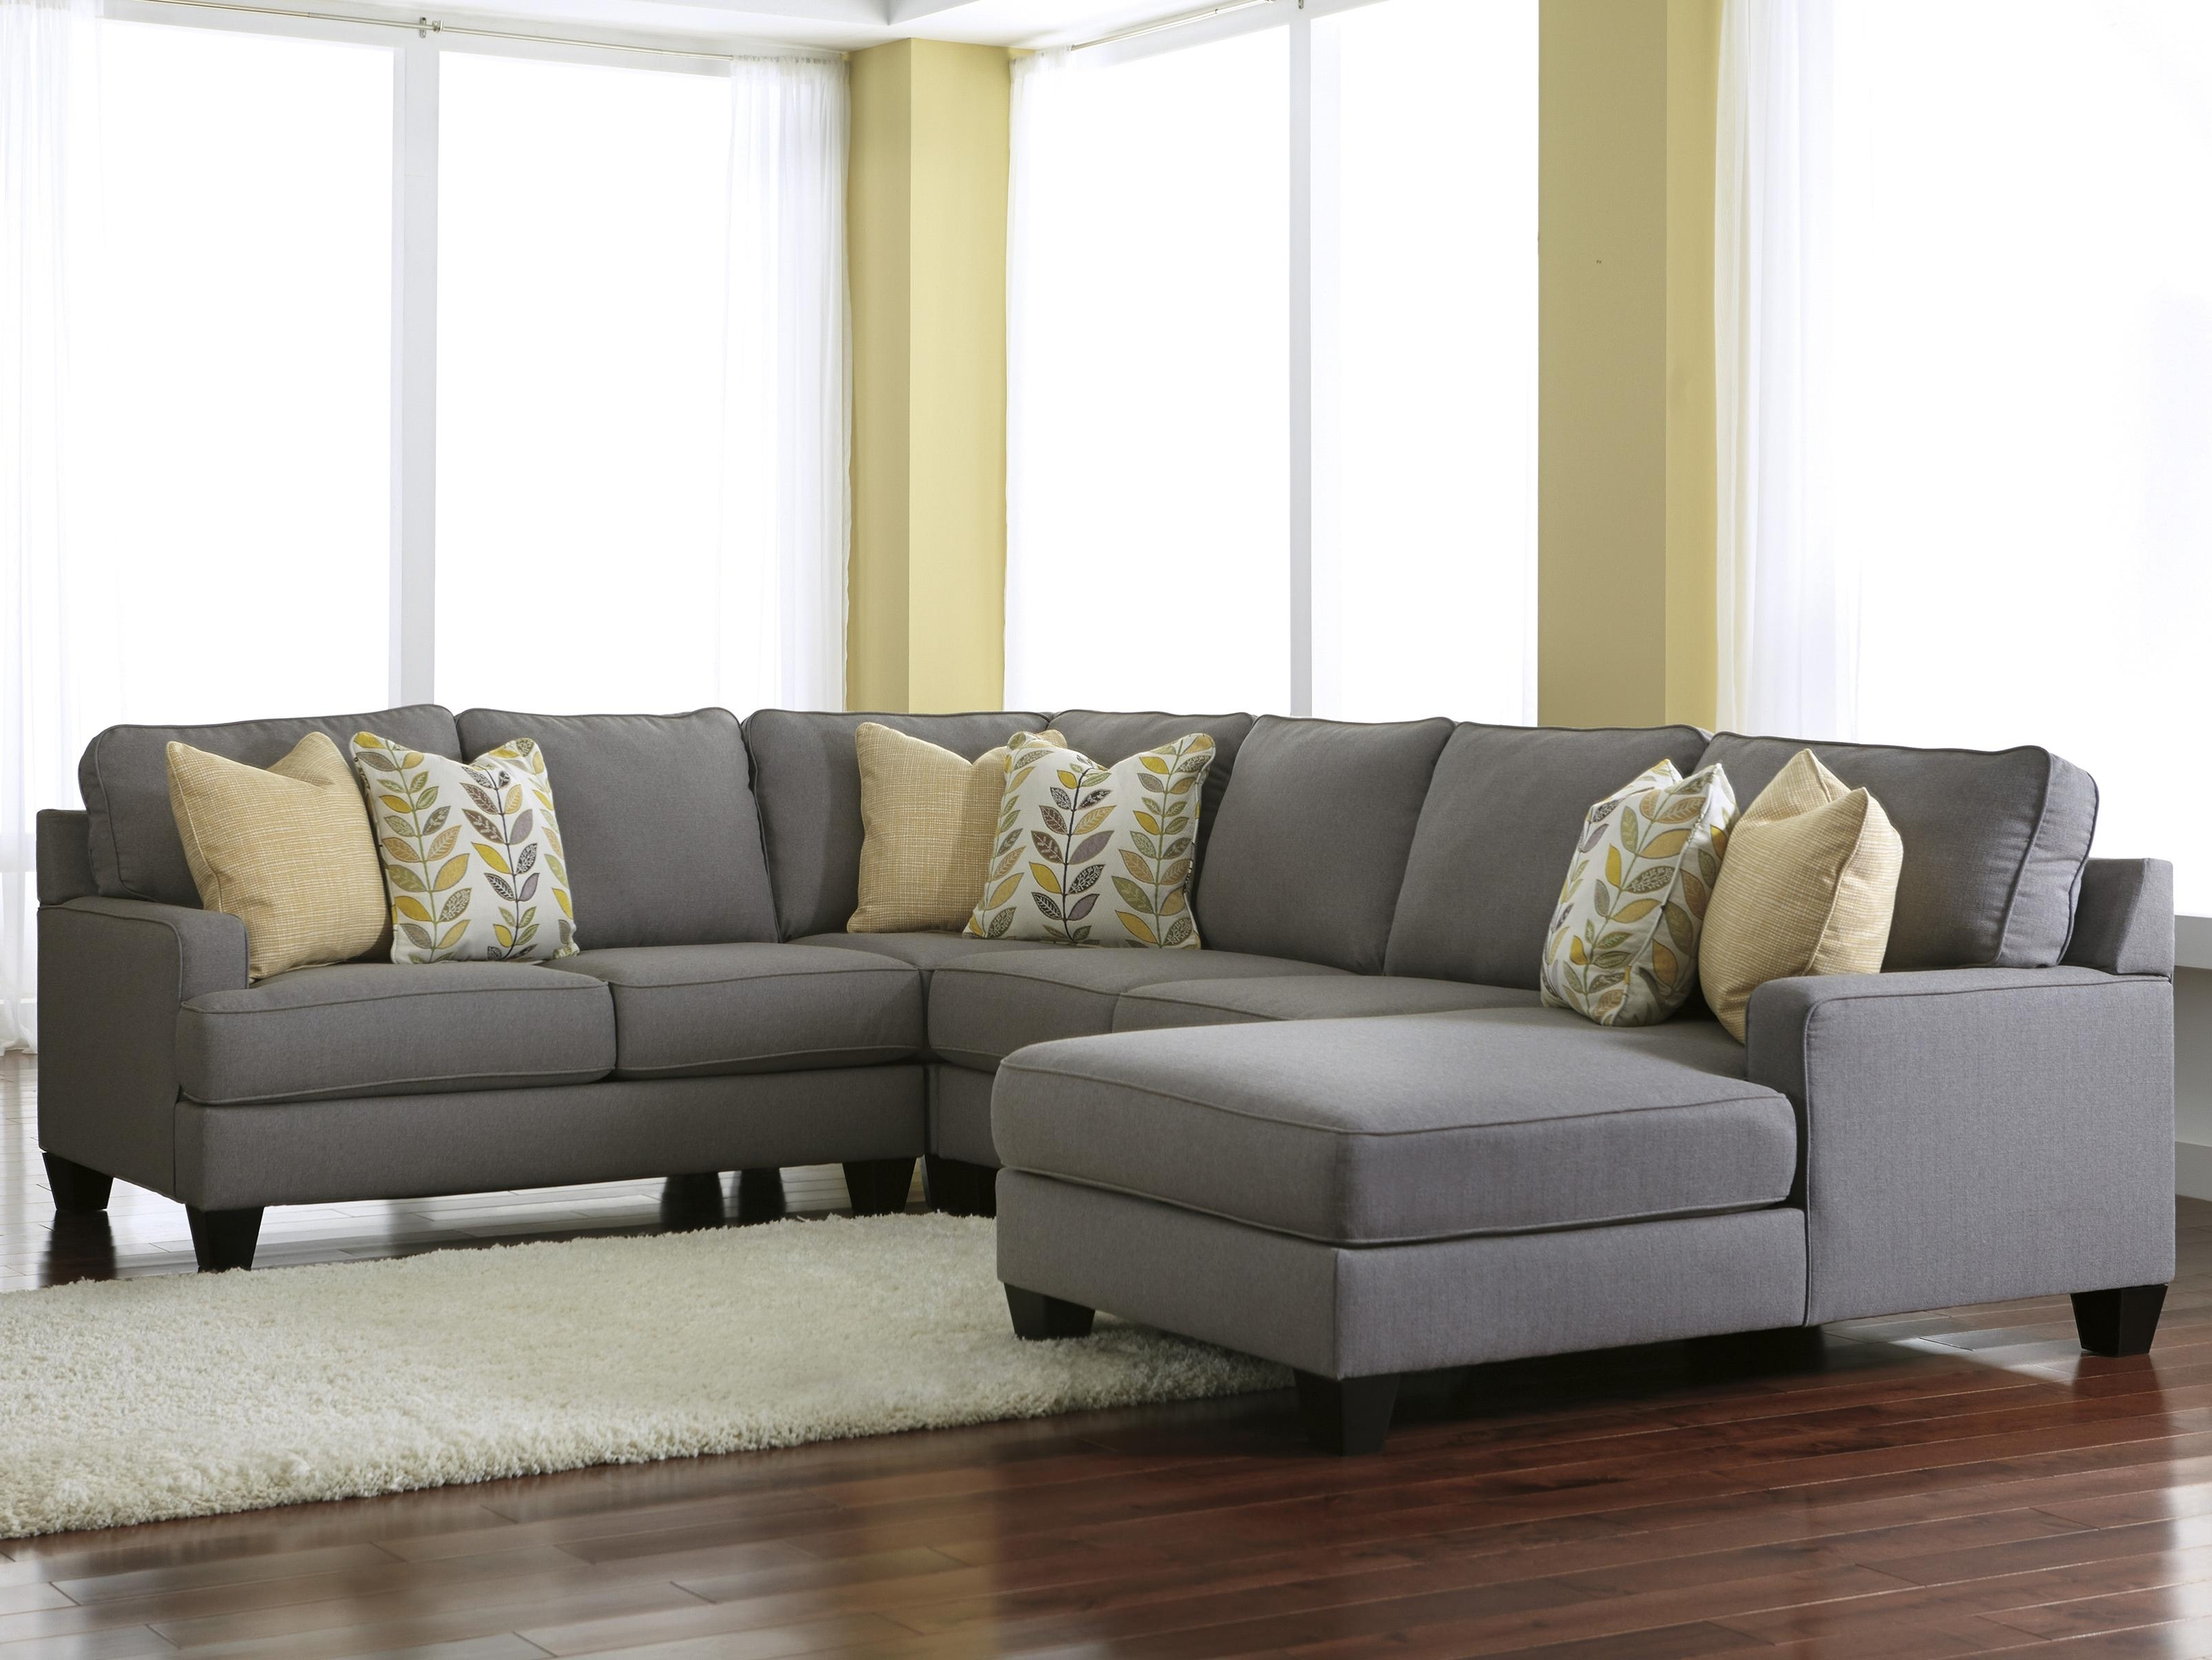 Grey Couches With Chaise In Widely Used Sofa ~ Comfy Sectional Sofa With Chaise Image Sectional Sofa With (View 5 of 15)